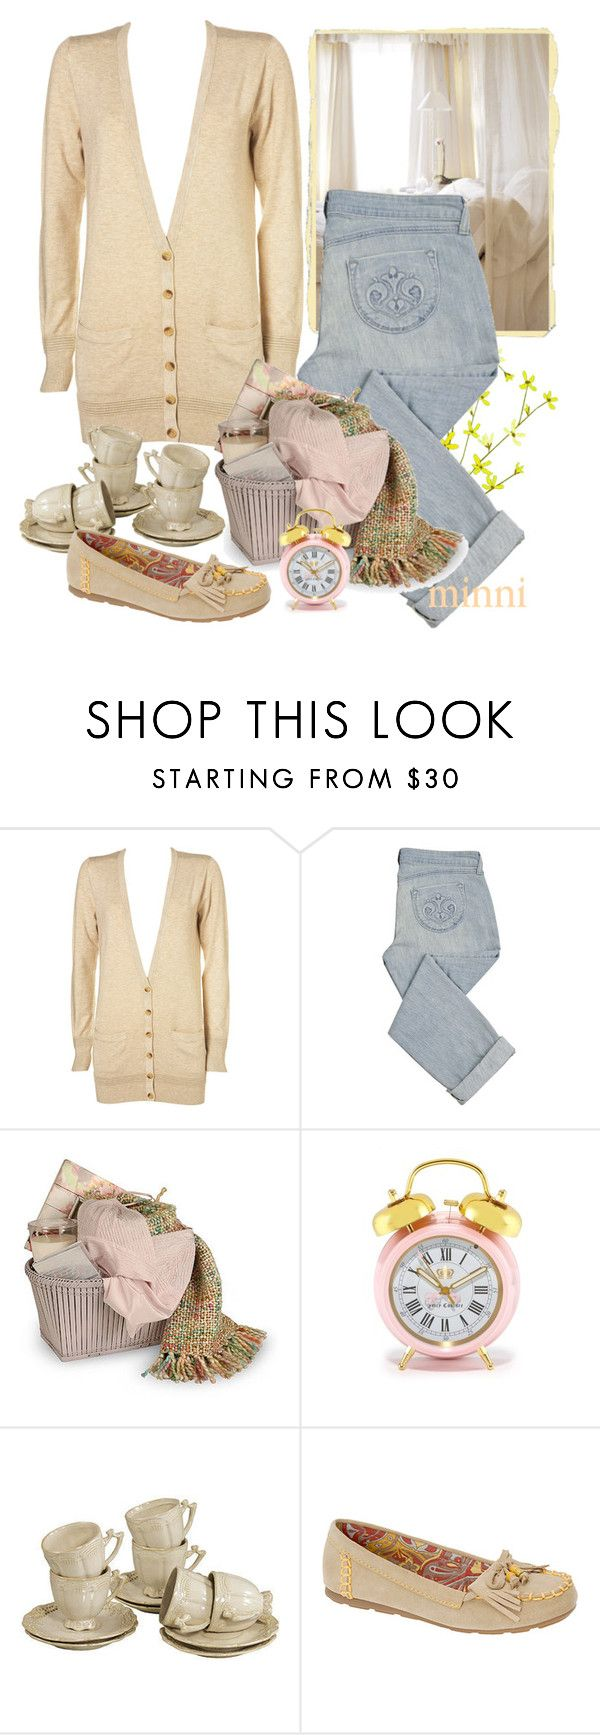 """""""Day At Home"""" by minni ❤ liked on Polyvore featuring Guide London, Siwy, Zara, Juicy Couture, cardigan, jeans, moccasin shoes, beige, clock and flowers"""